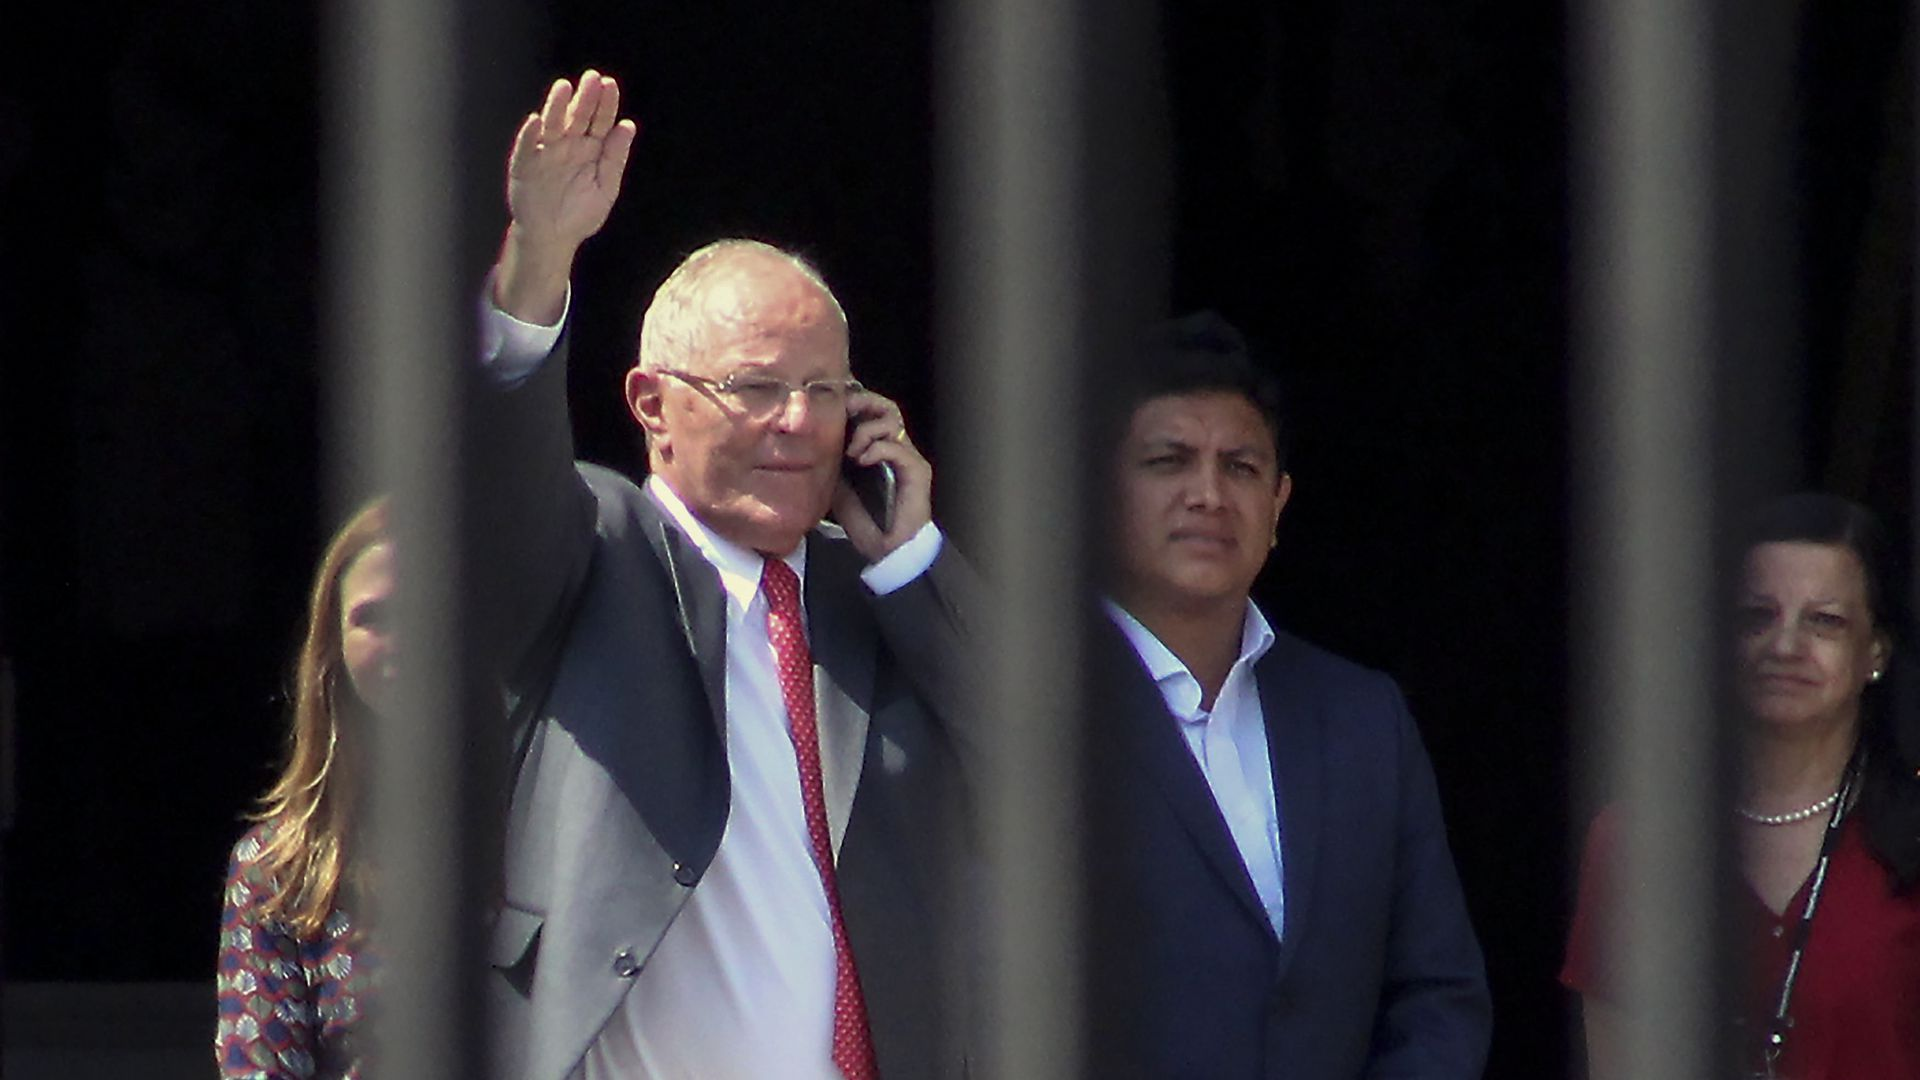 Peruvian President Peruvian President Pedro Pablo Kuczynski waves after announcing his resignation